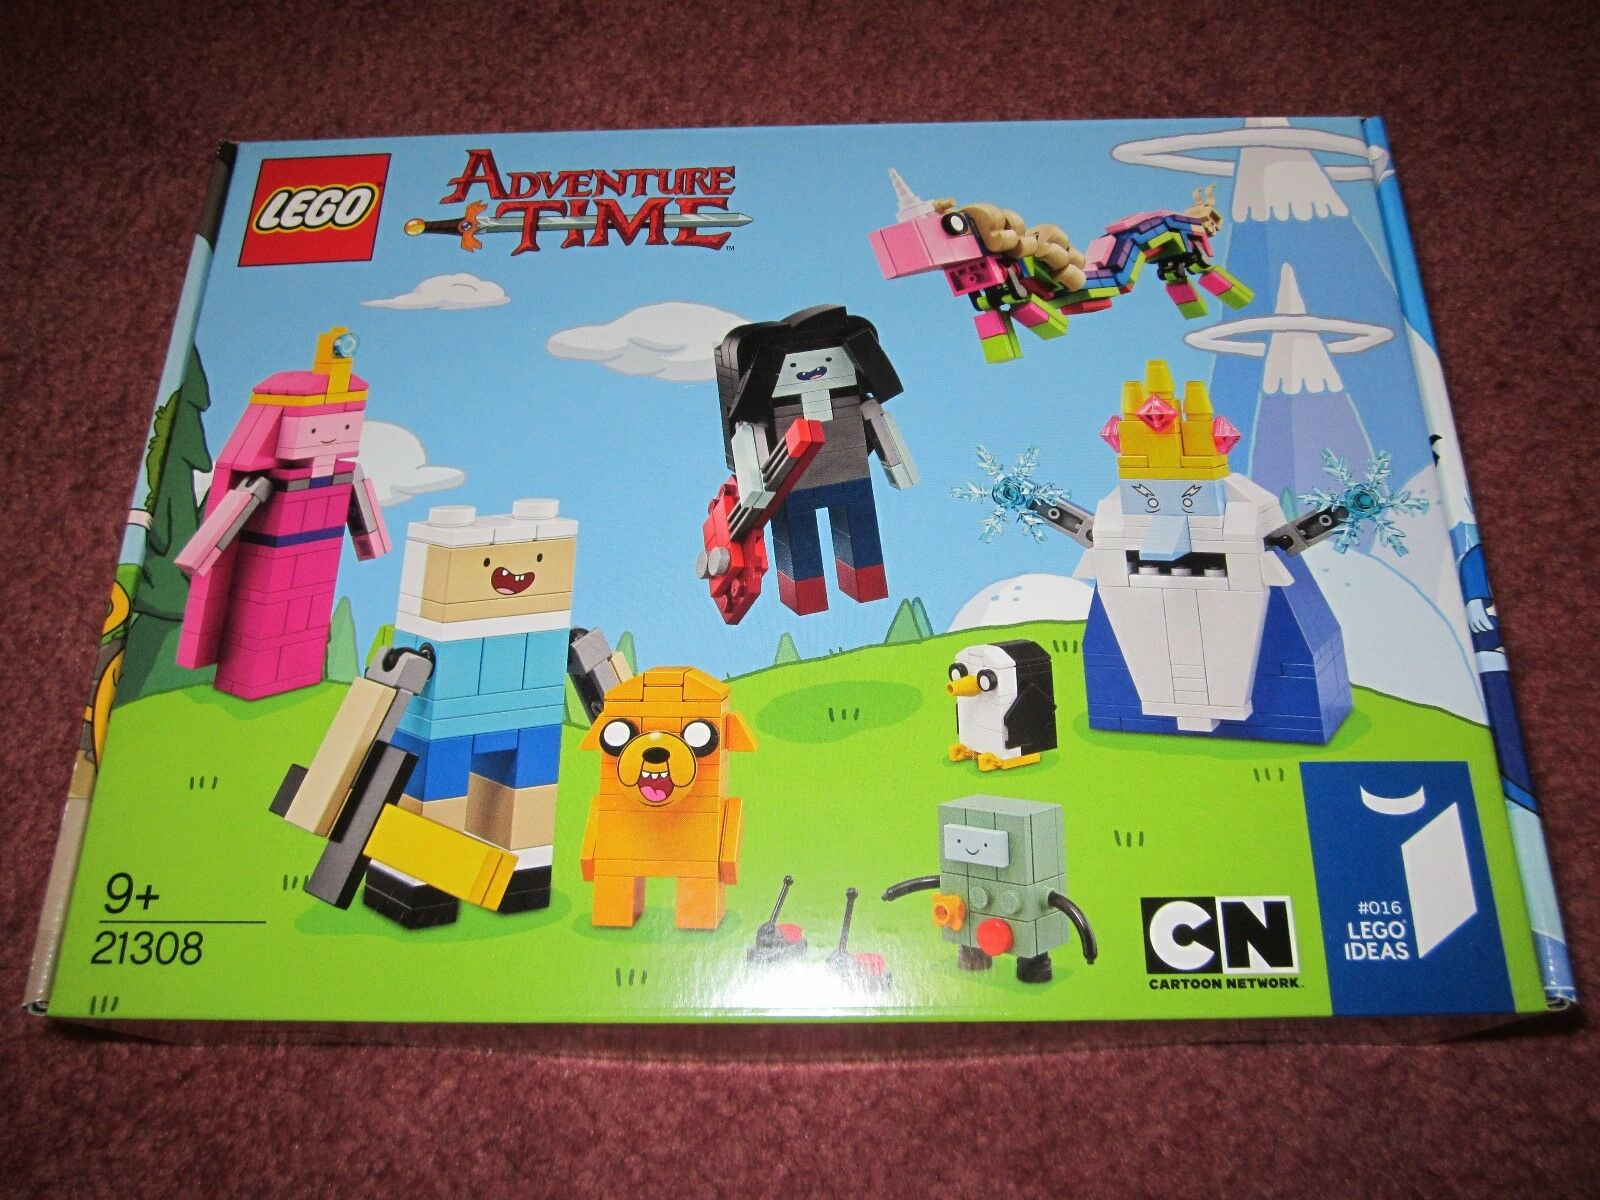 LEGO IDEAS ADVENTURE TIME 21308 - NEW BOXED SEALED